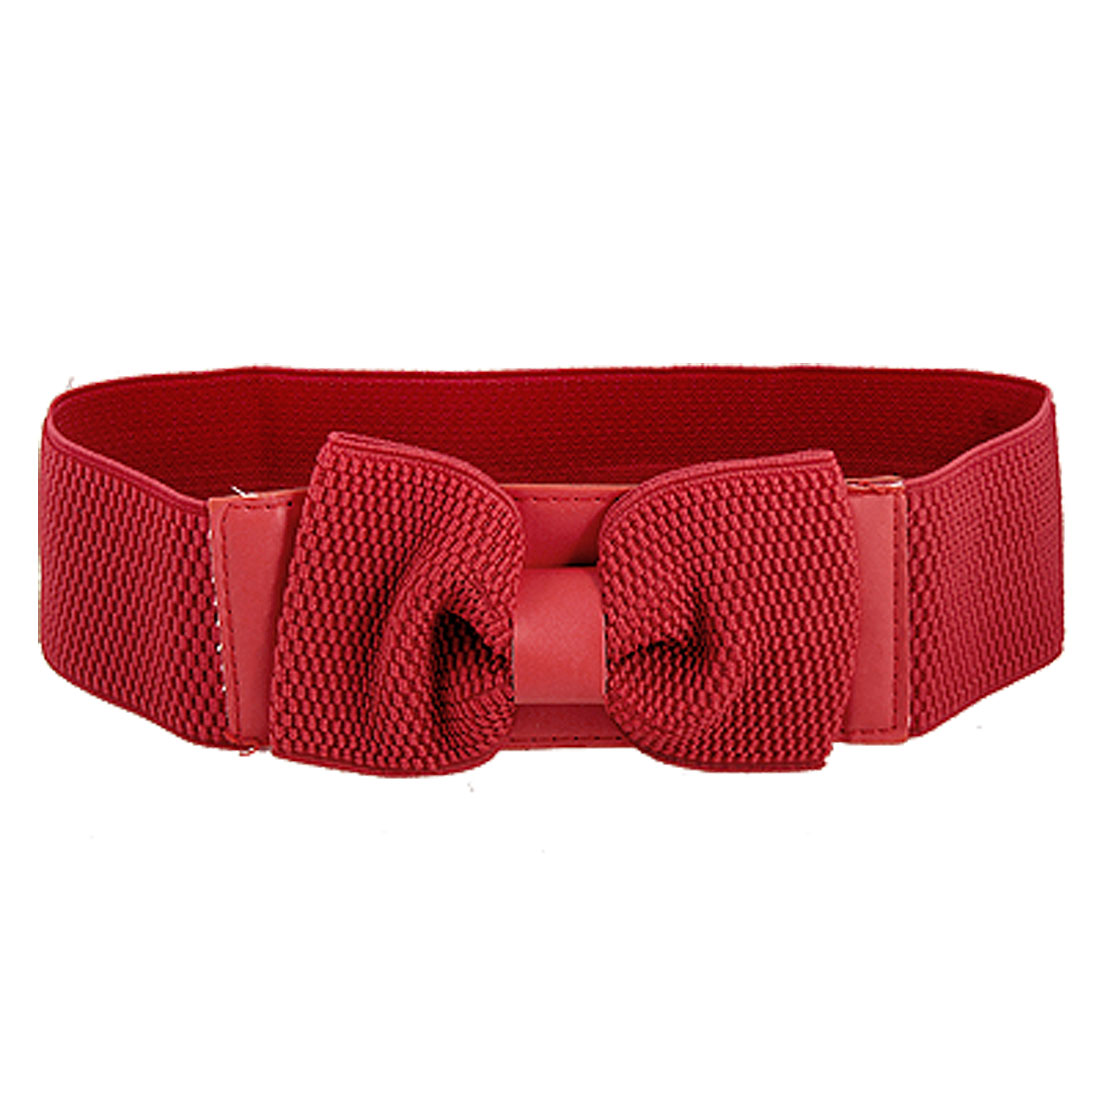 Women Adjustable Faux Leather Band Bow Tie Decor Stretchy Cinch Belt Red